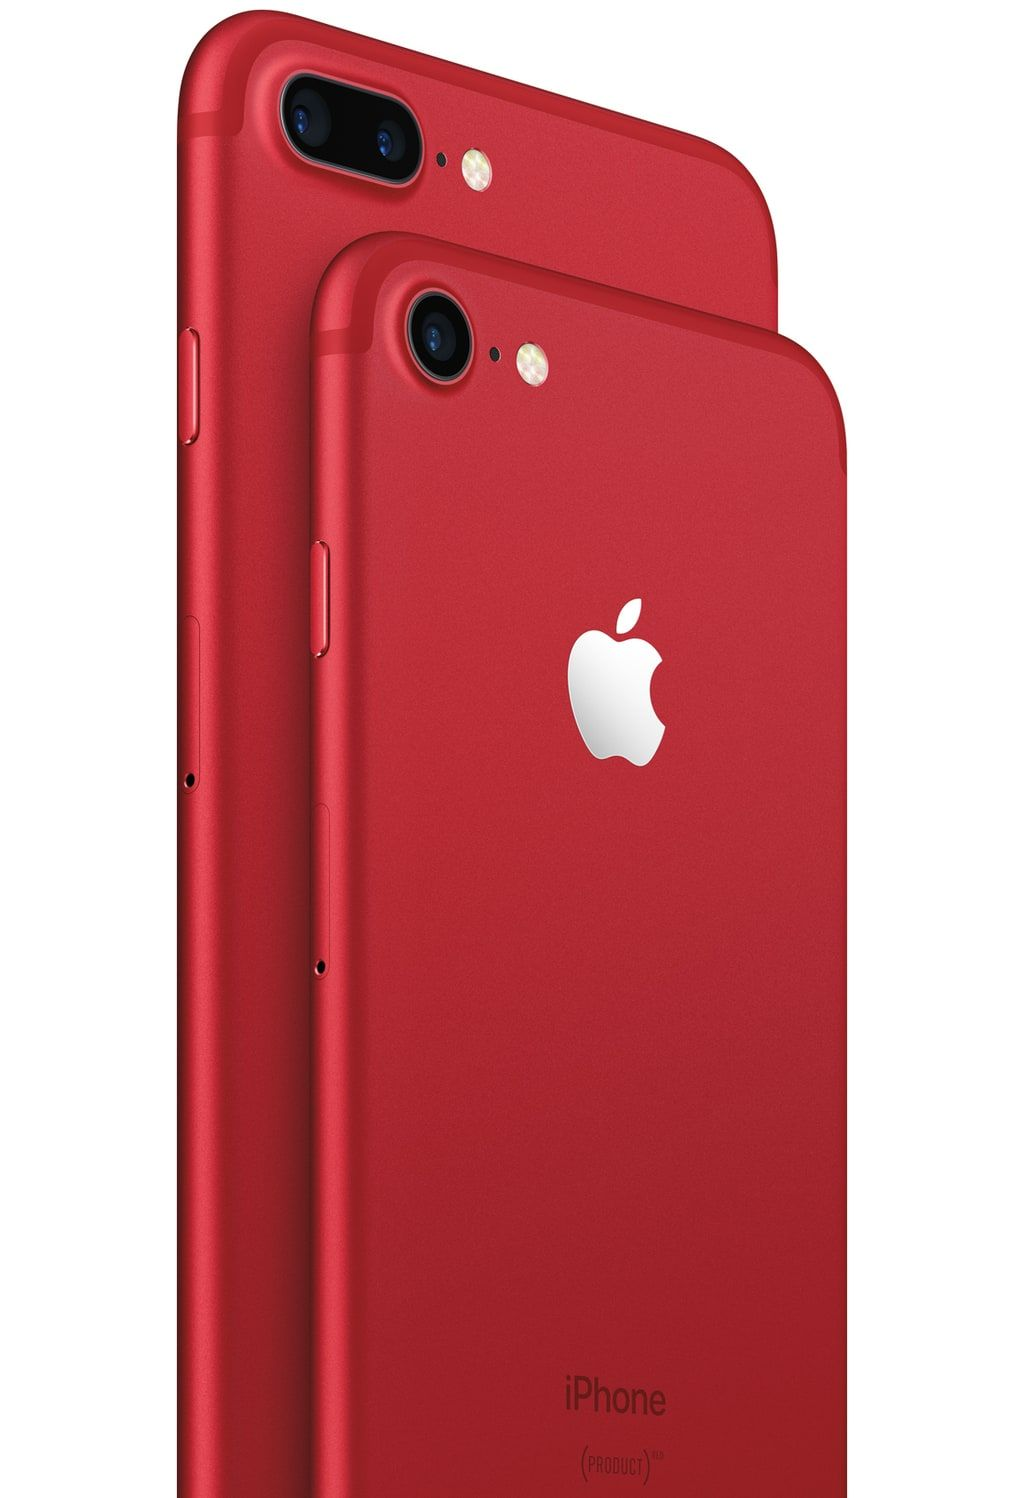 9bd04080f477 Apple introduced a red version of the iPhone 7 and iPhone 7 Plus on  Tuesday, March 21, to commemorate the company's 10-plus-year partnership  with ...